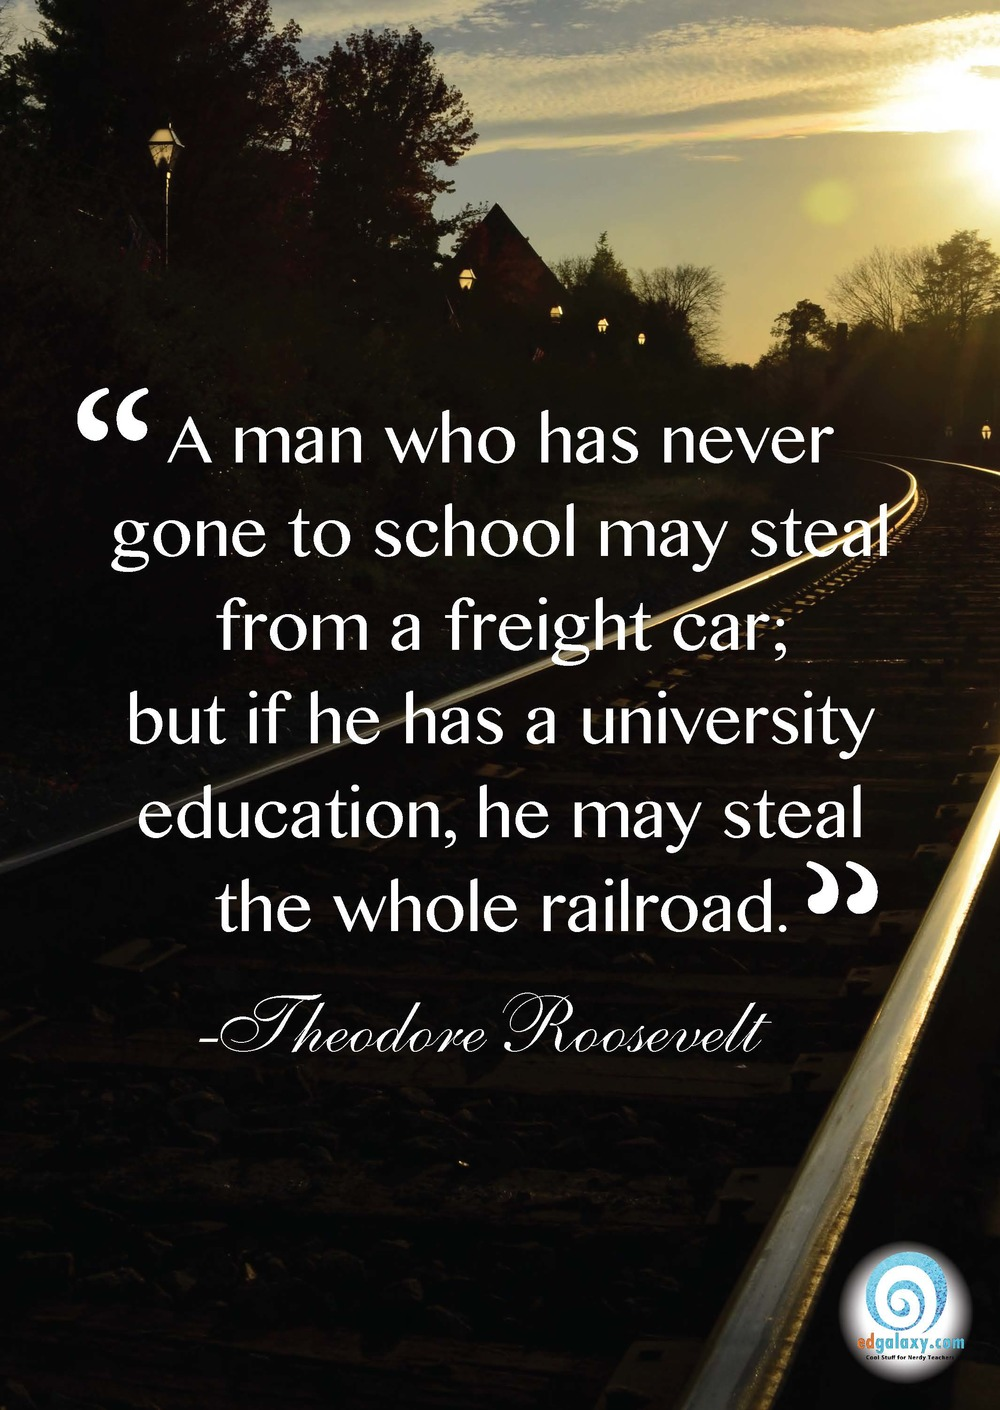 Education And Life Quotes Endearing Education Quotes  Famous Quotes For Teachers And Students